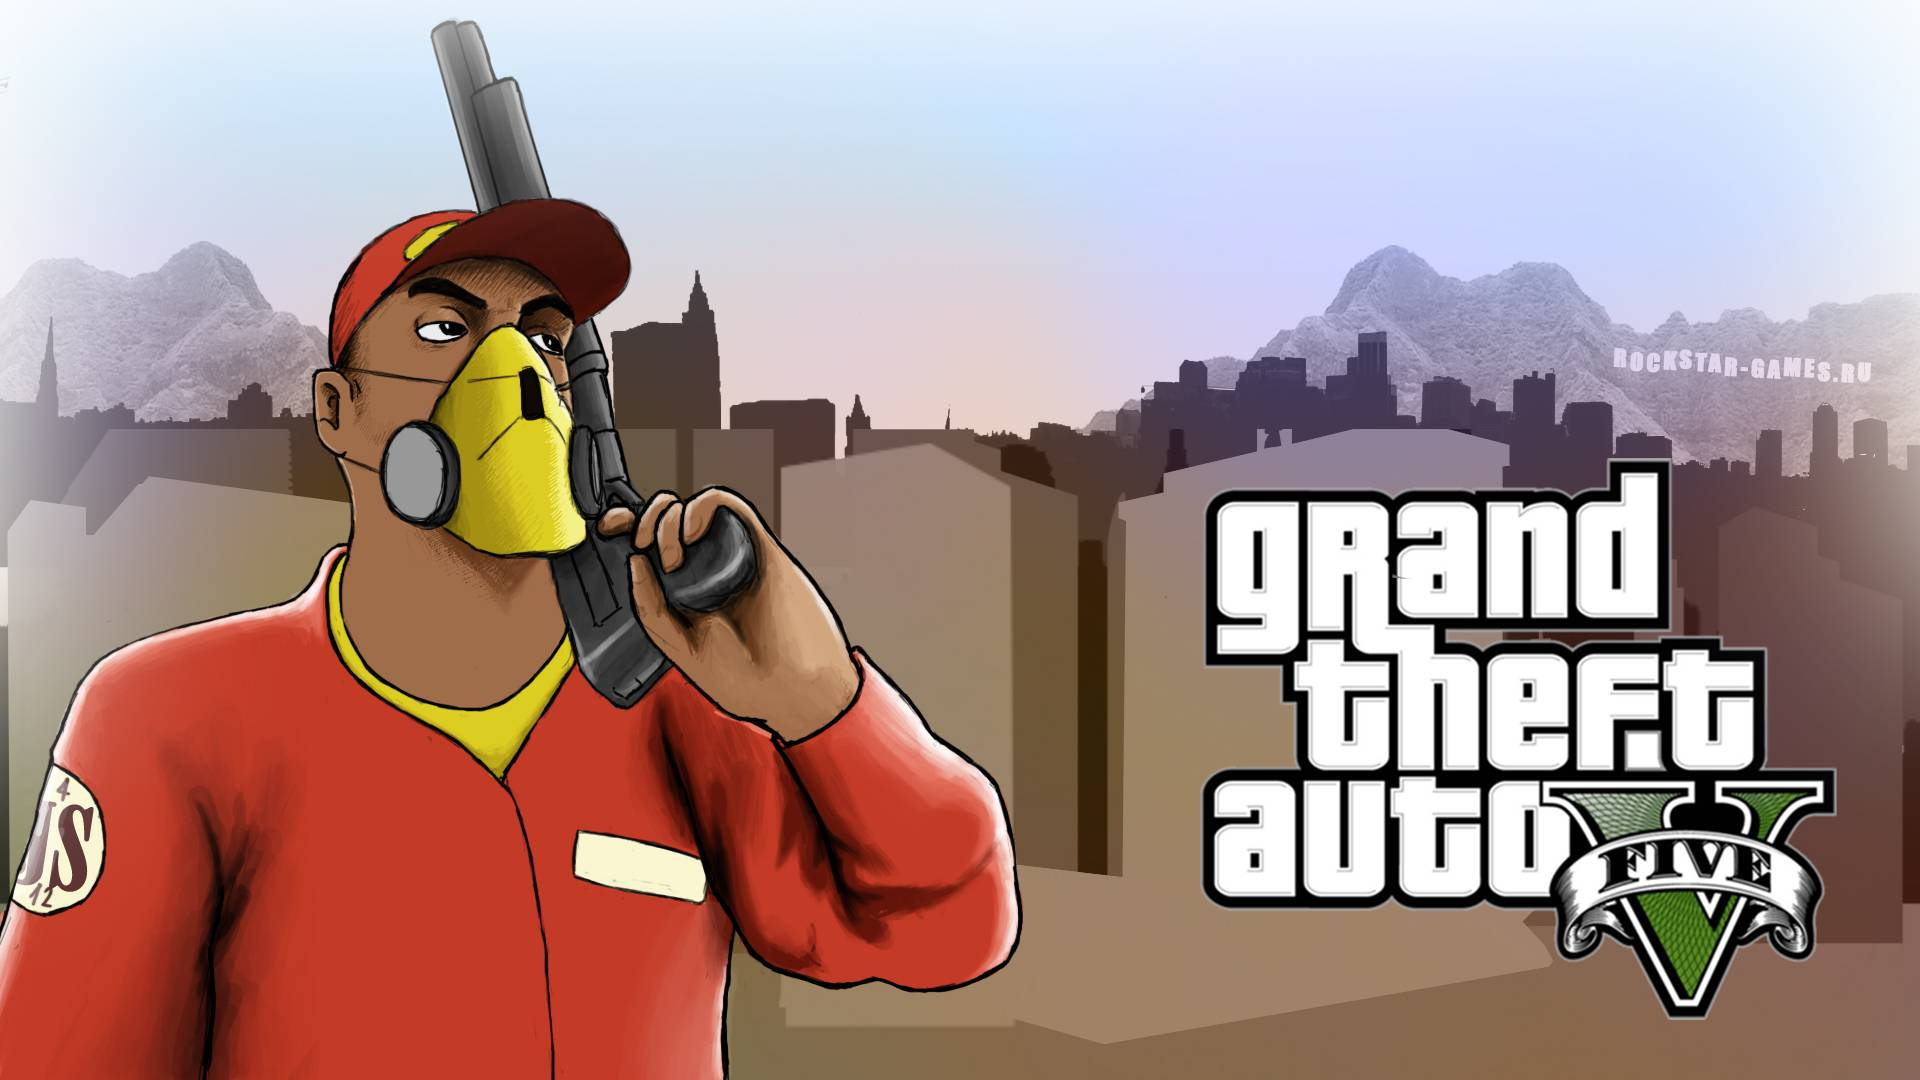 grand-theft-auto-gta-1920×1080-wallpaper-wp3401175